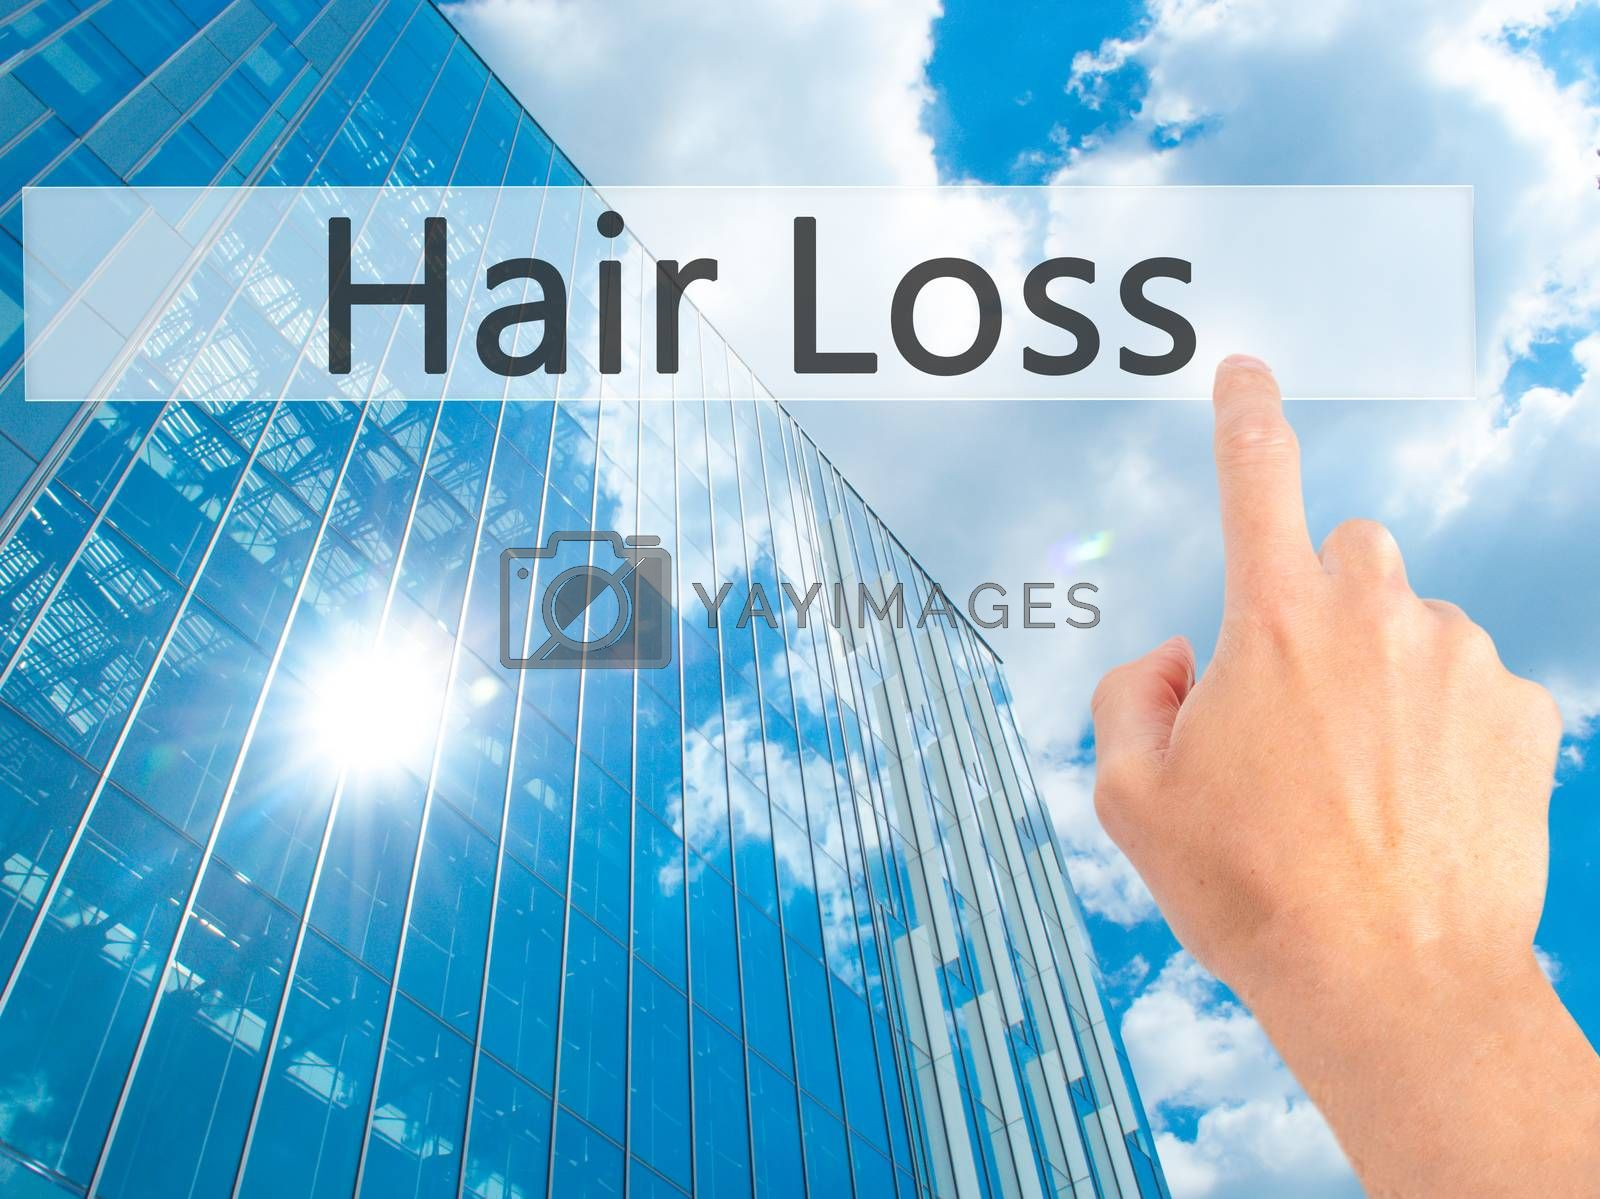 Hair Loss - Hand pressing a button on blurred background concept by jackald